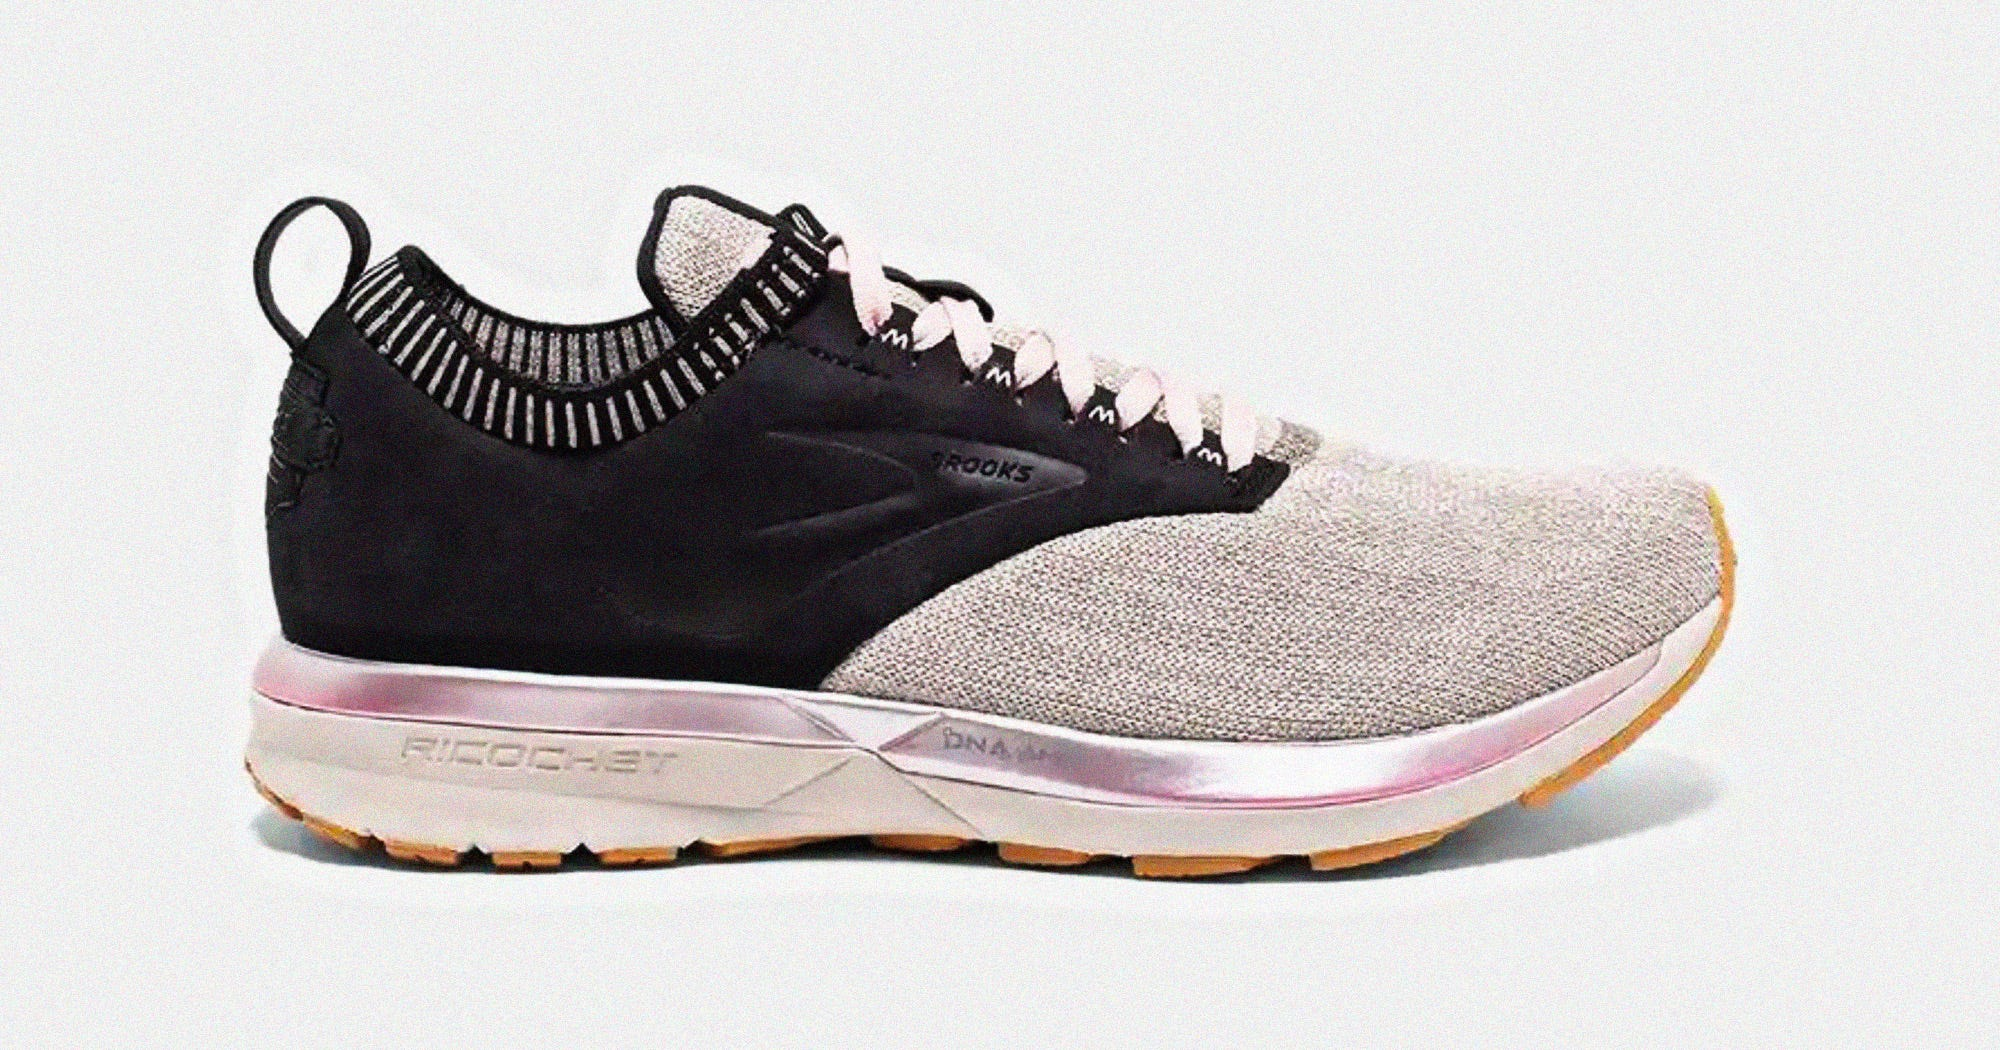 4fbfd7e6c9c The Sneakers You Need For Every Tye Of Workout